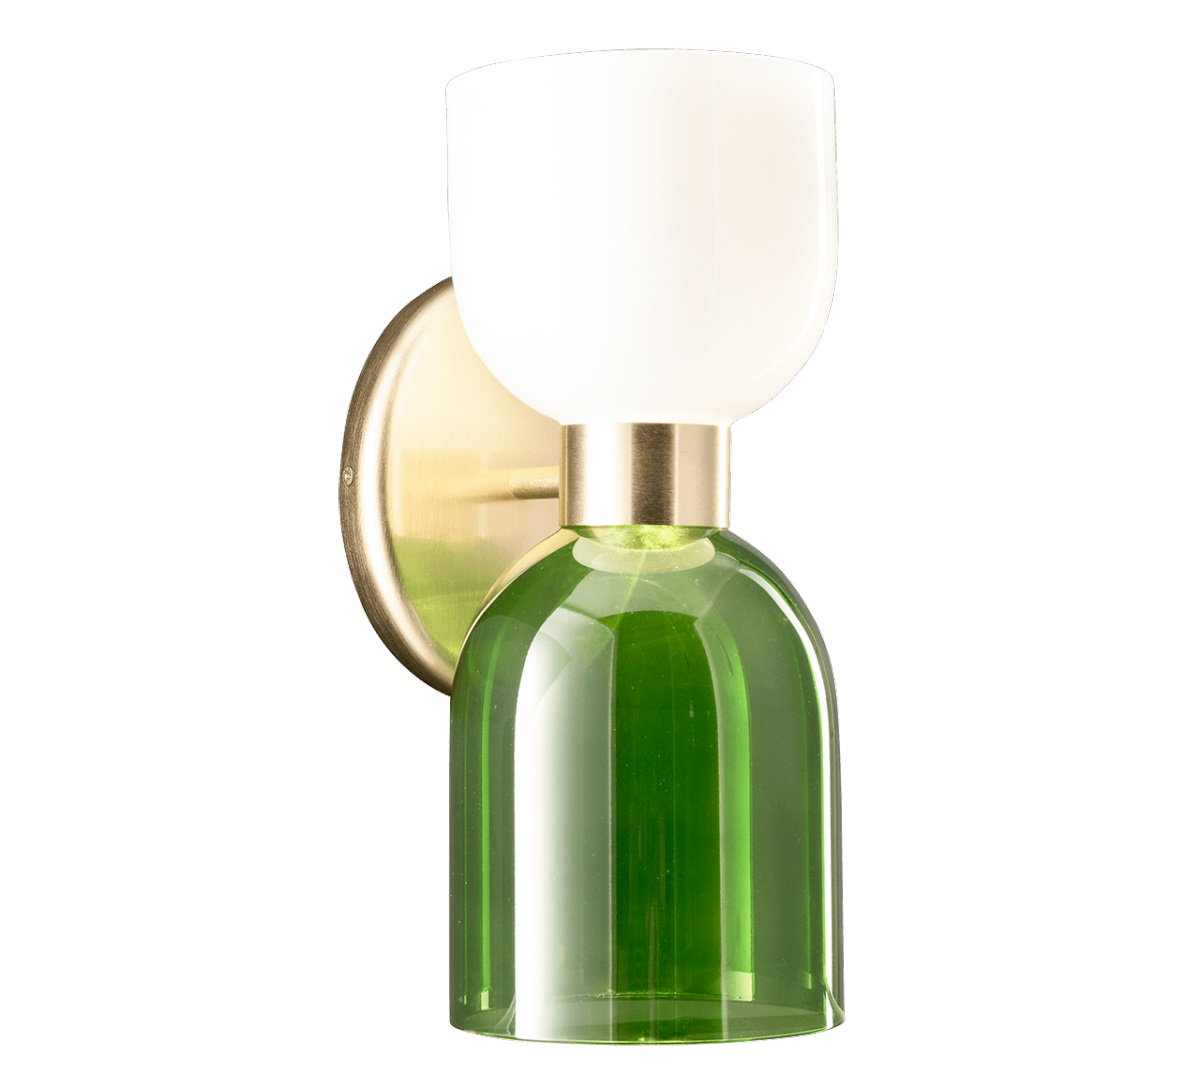 CATERINA WALL - Incanto Modern Collection 4026 / AP2Caterina Wall Sconce in metal with brushed gold with opal white and green glass diffuserAvailable in different colours.Design THDP & Simone Bretti